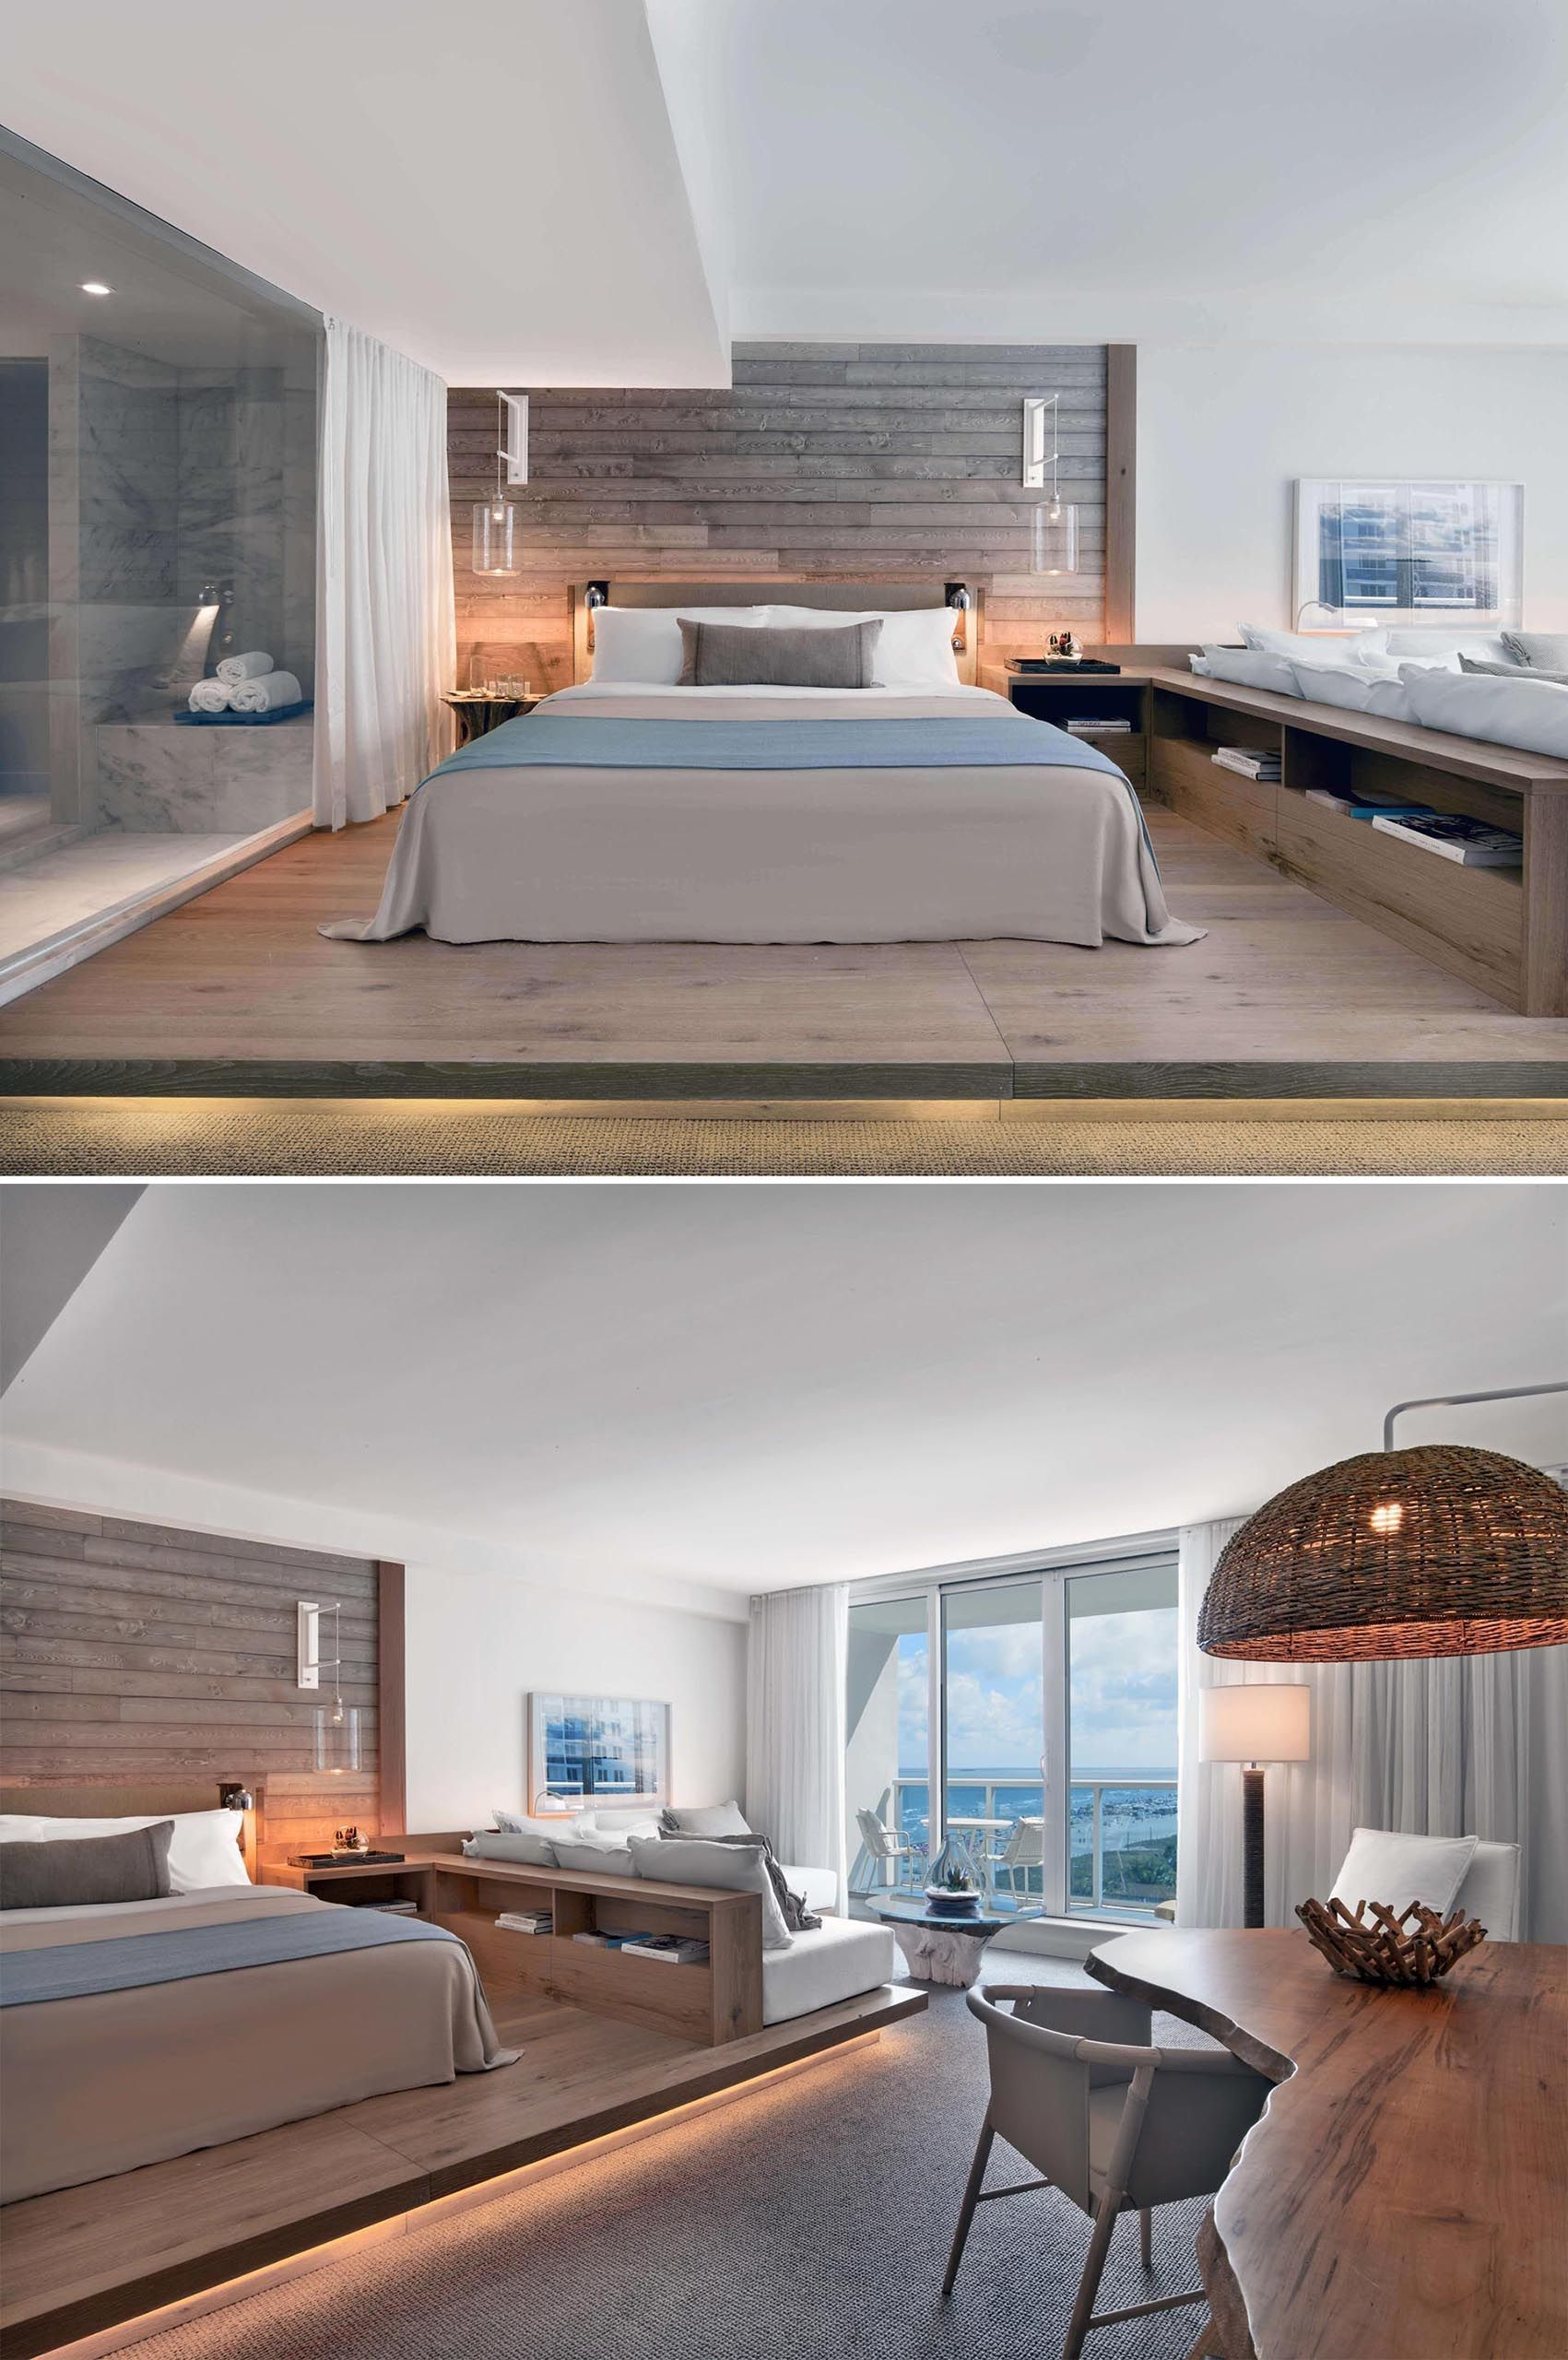 Get Bedroom Design Ideas From This Hotel Room With A Wood Platform And Built In Sofa Modern Hotel Room Hotel Room Design Built In Sofa